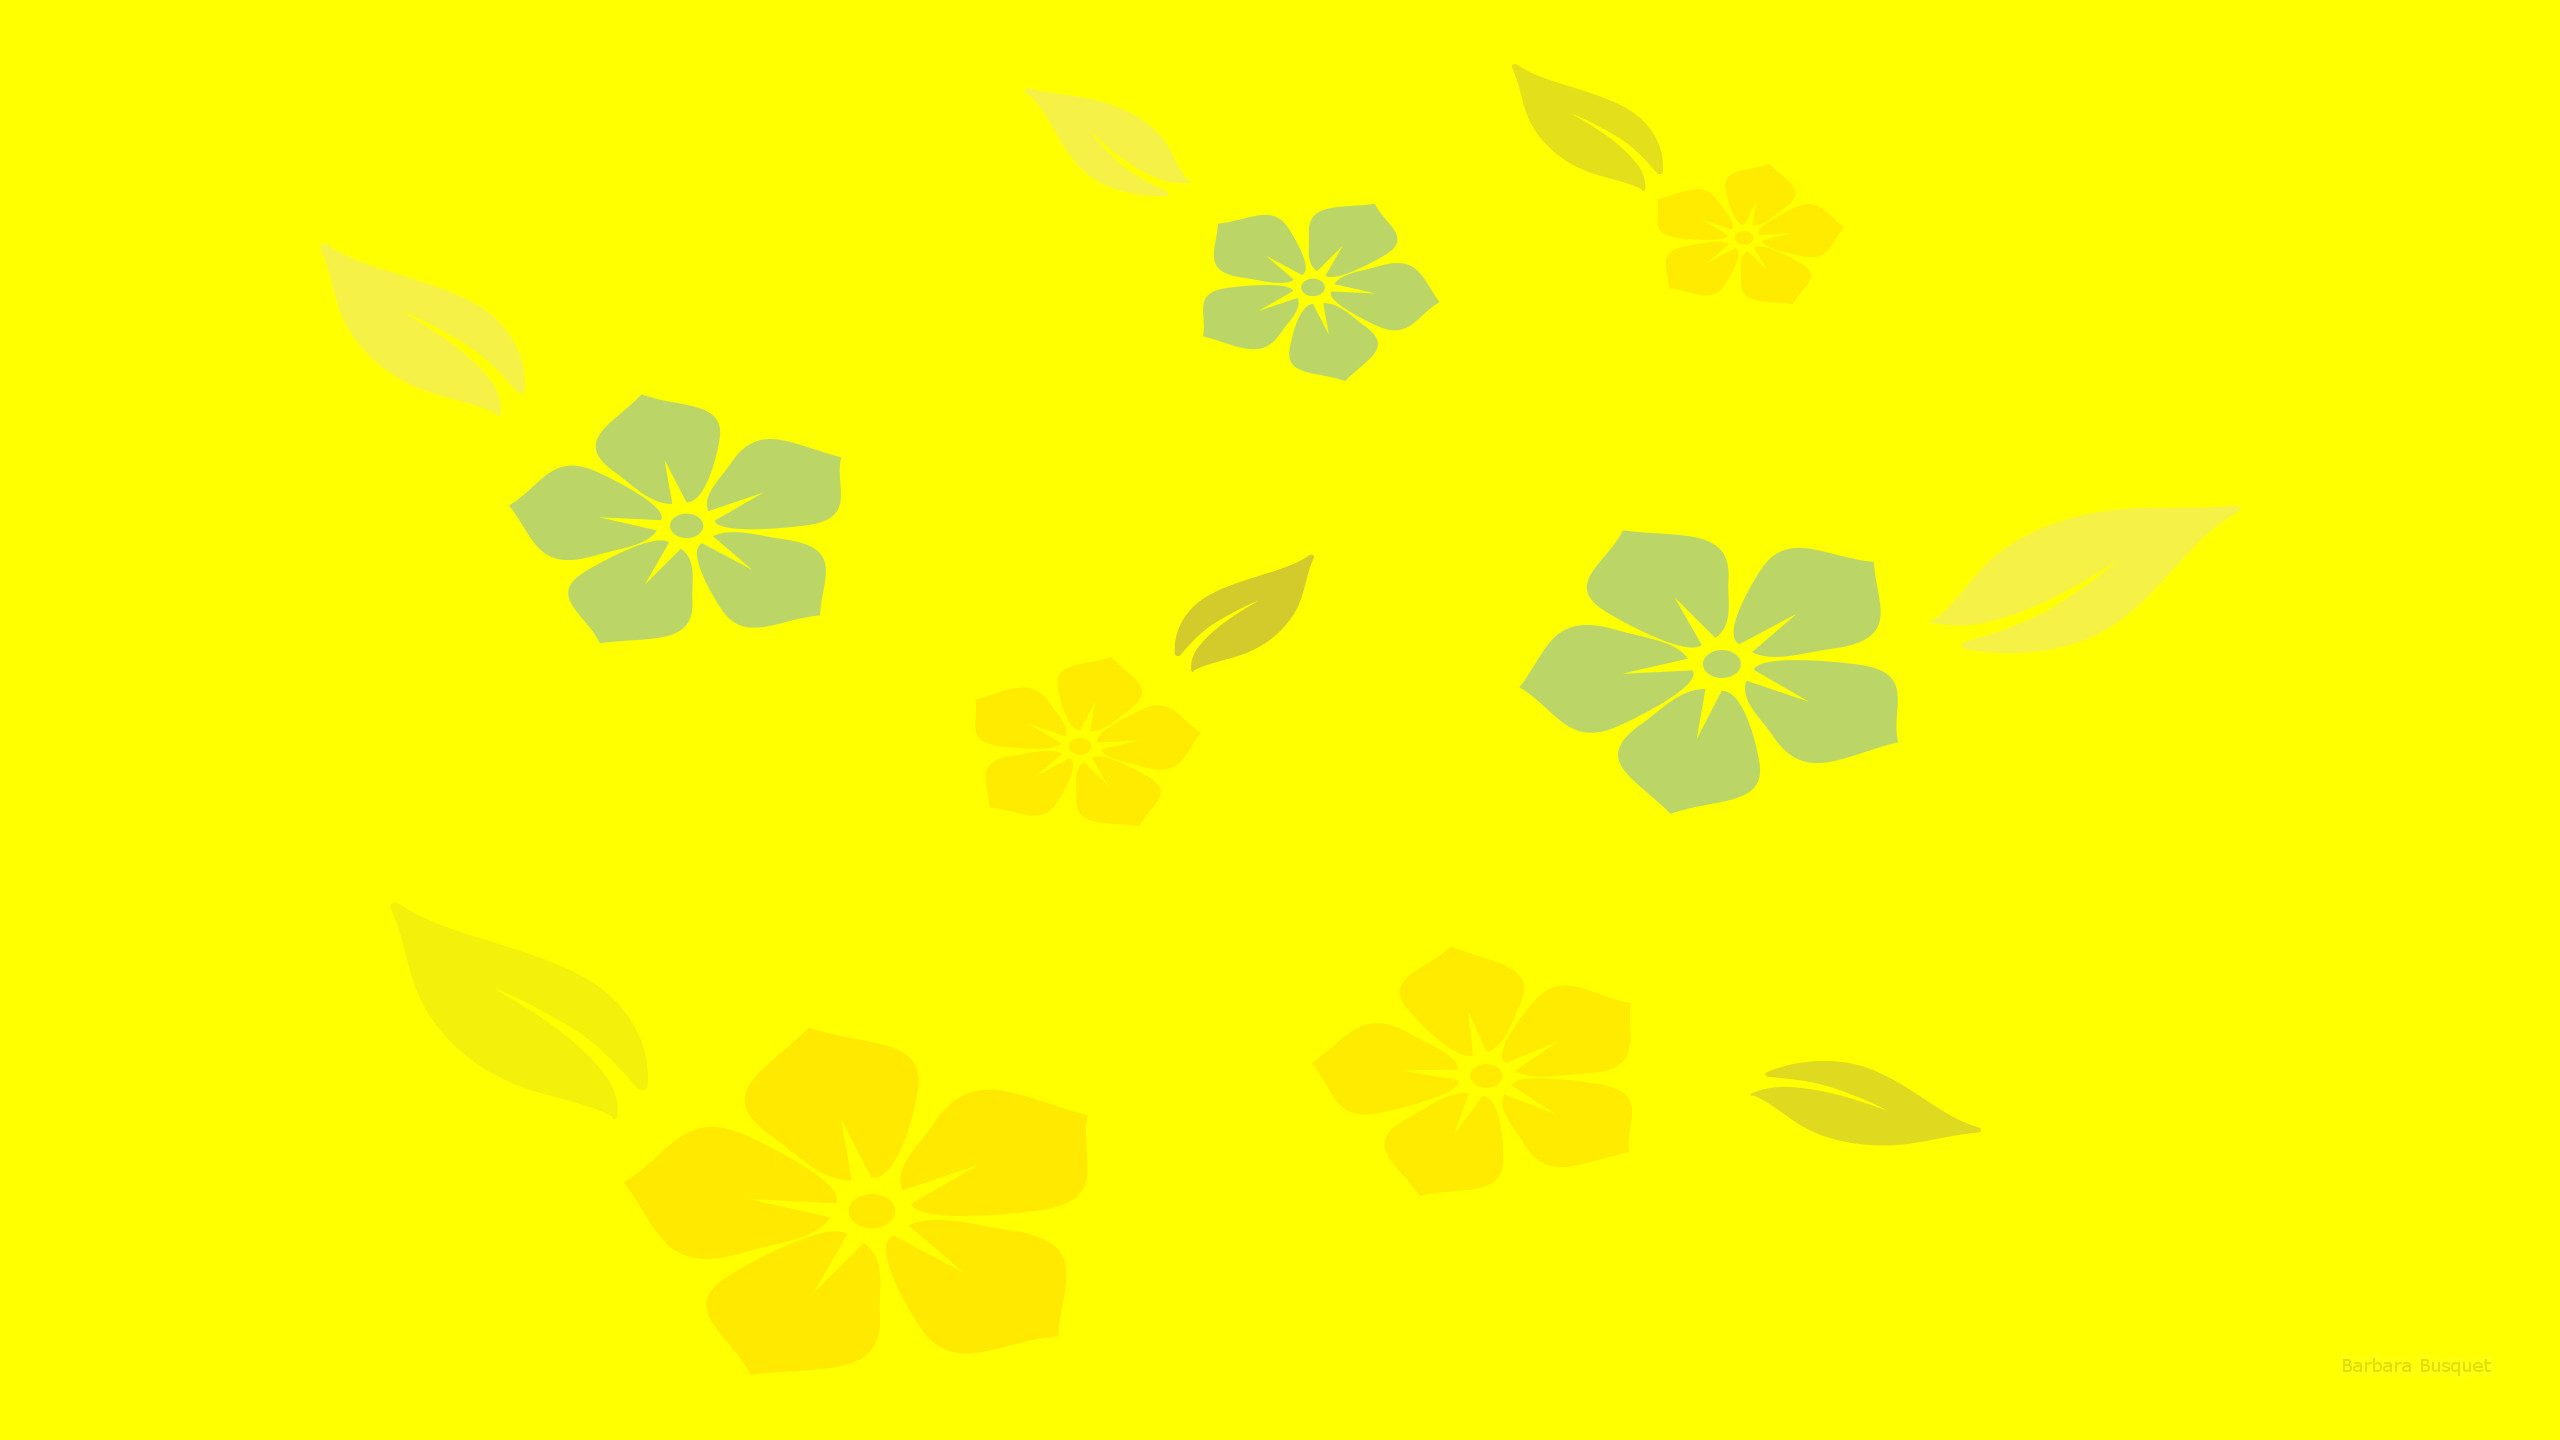 Simple Desktop Background With Flowers